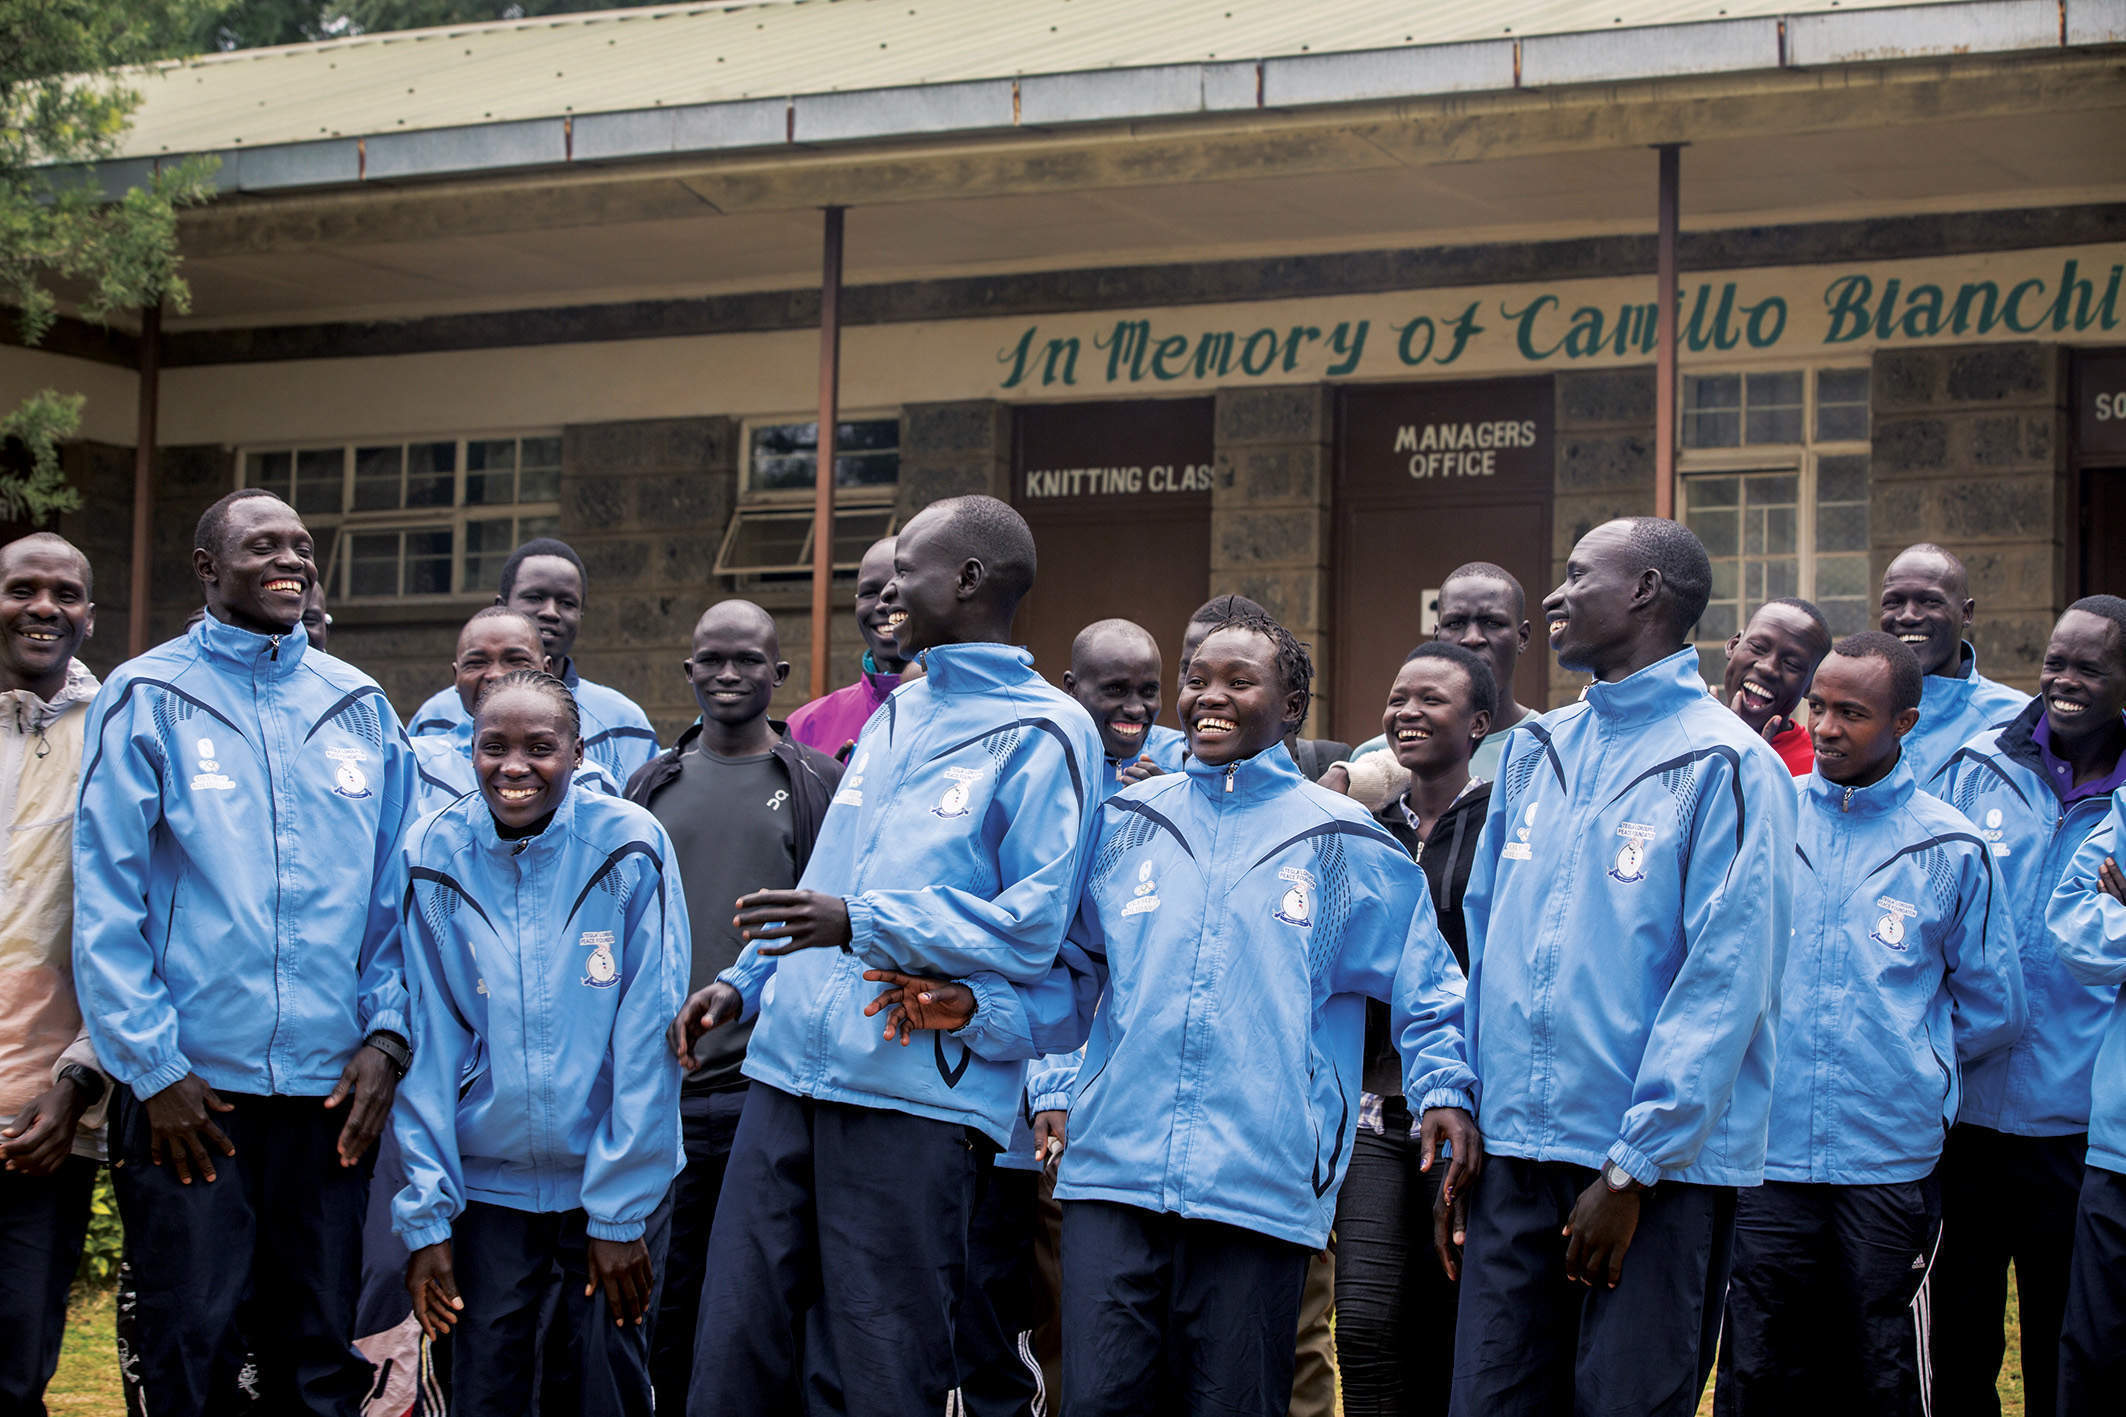 Escape to victory: the refugees who will run at the Rio Olympics